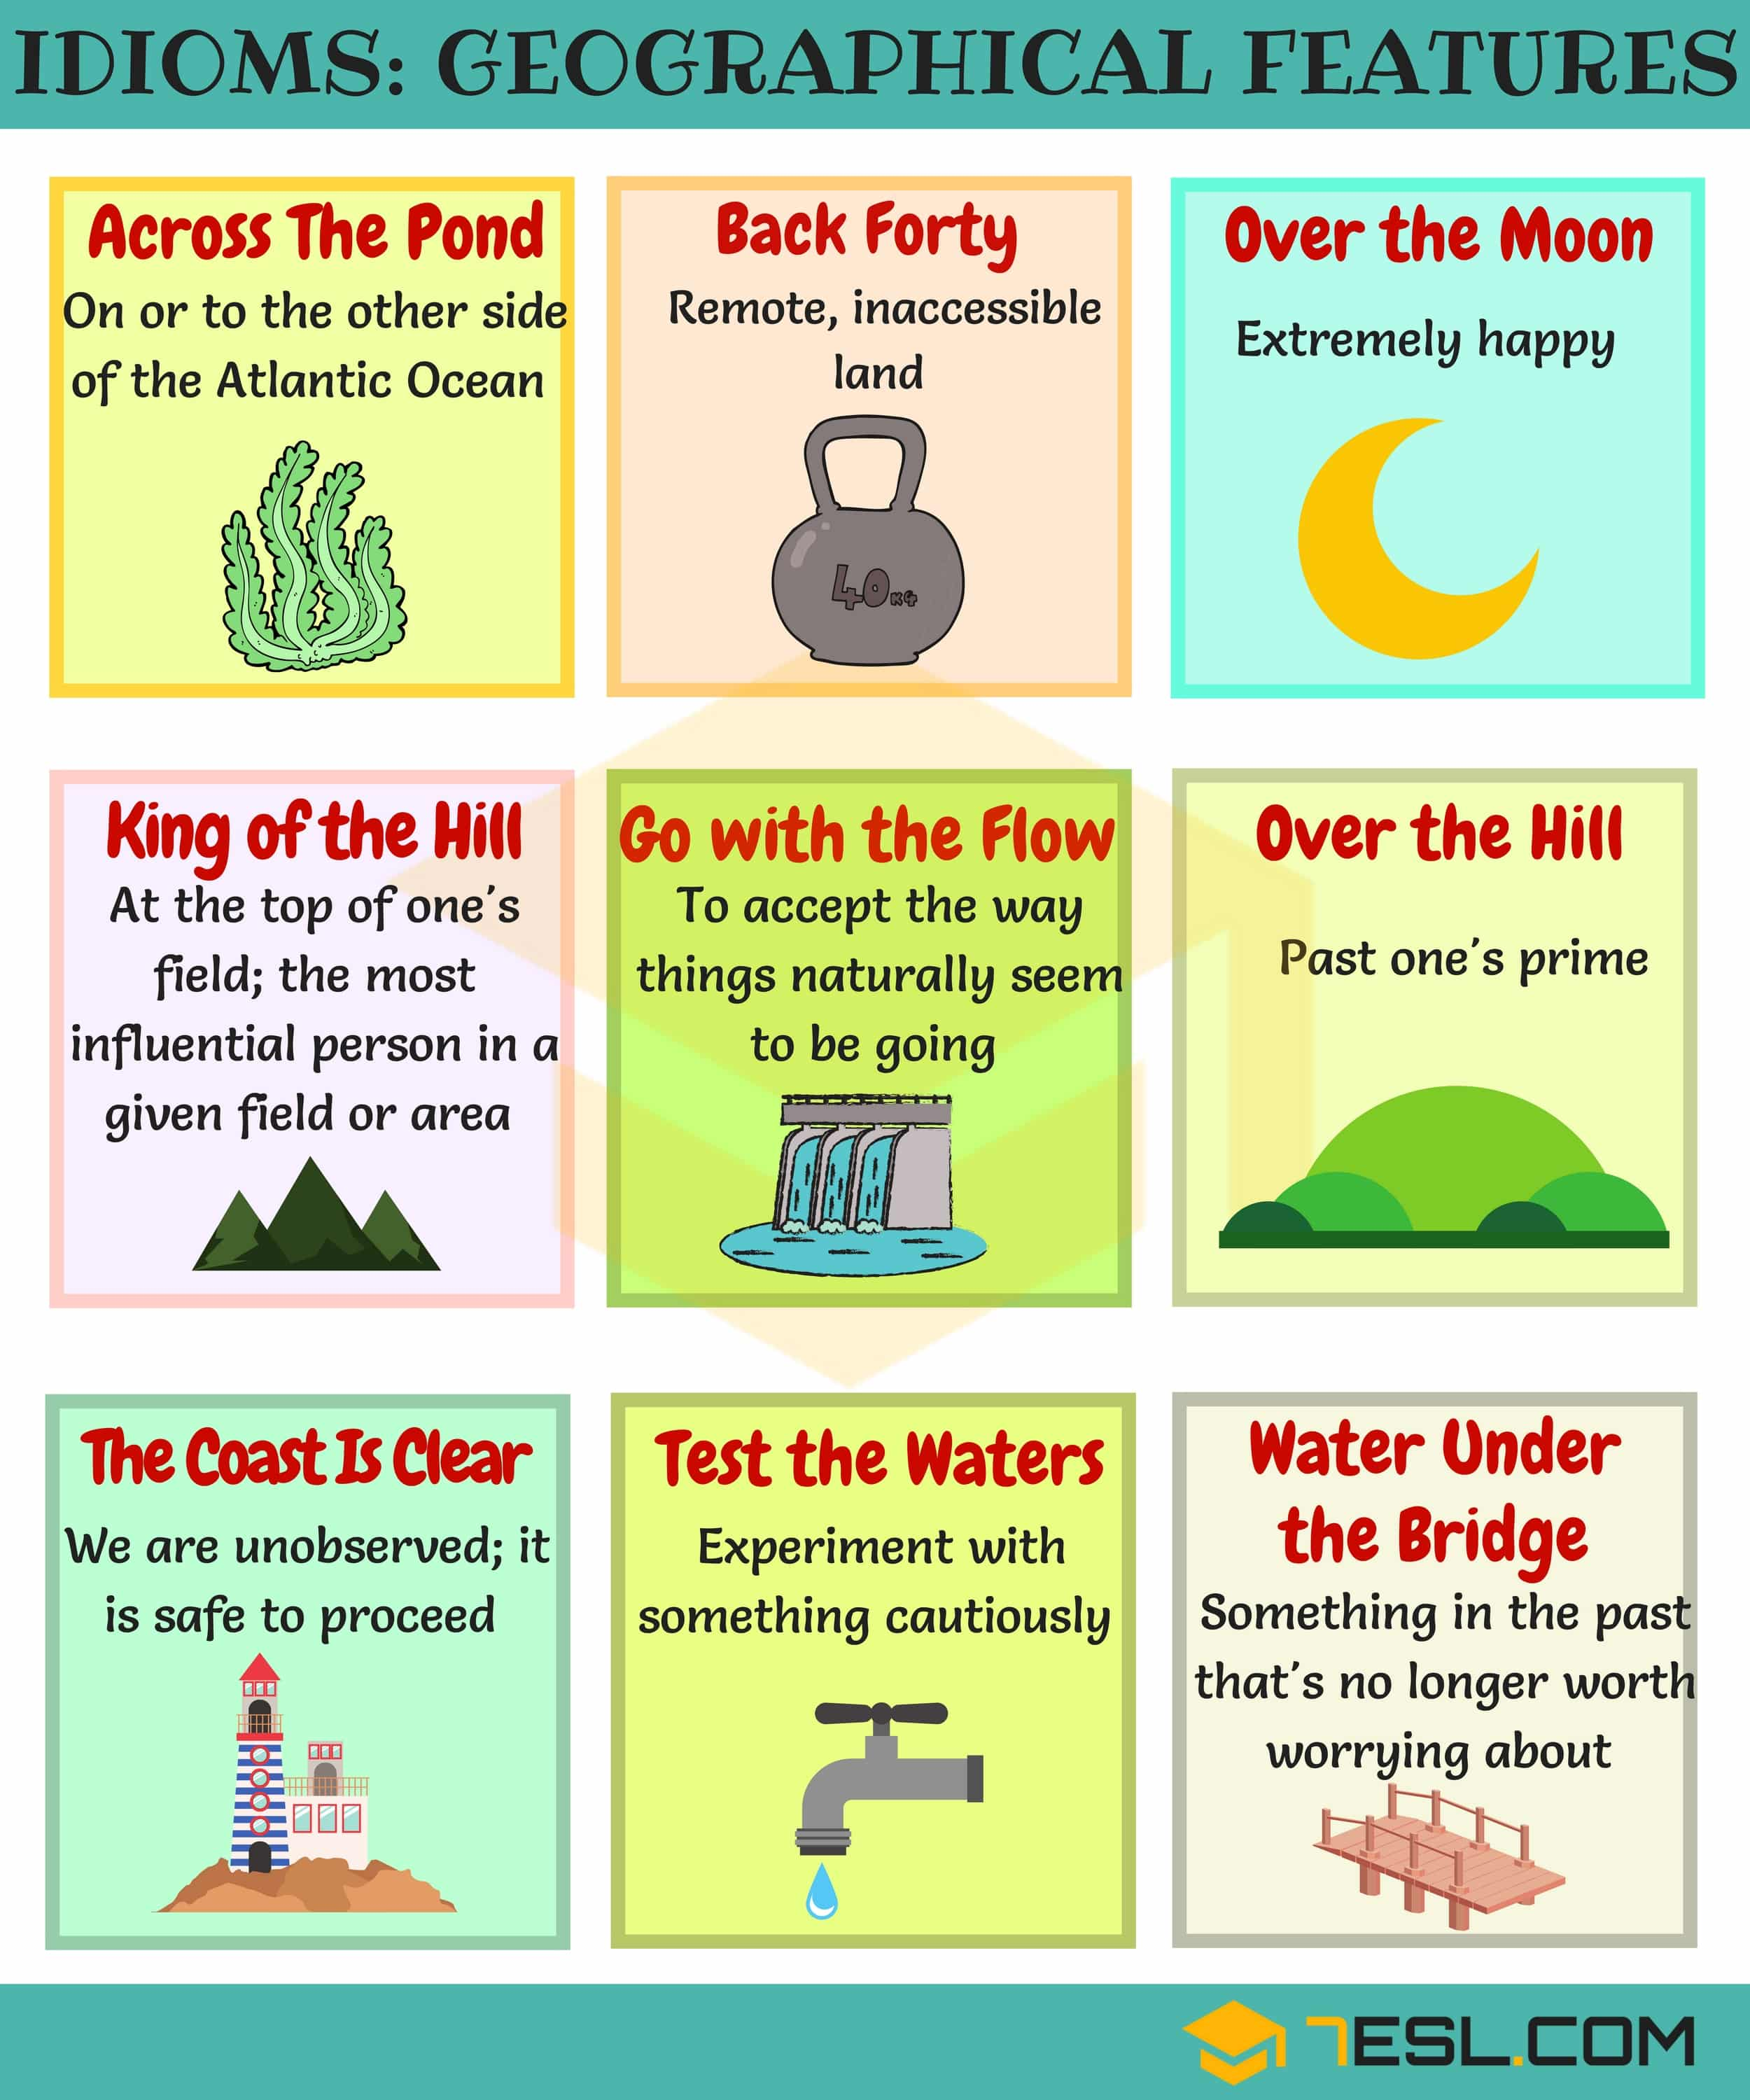 idioms about Geographical Features